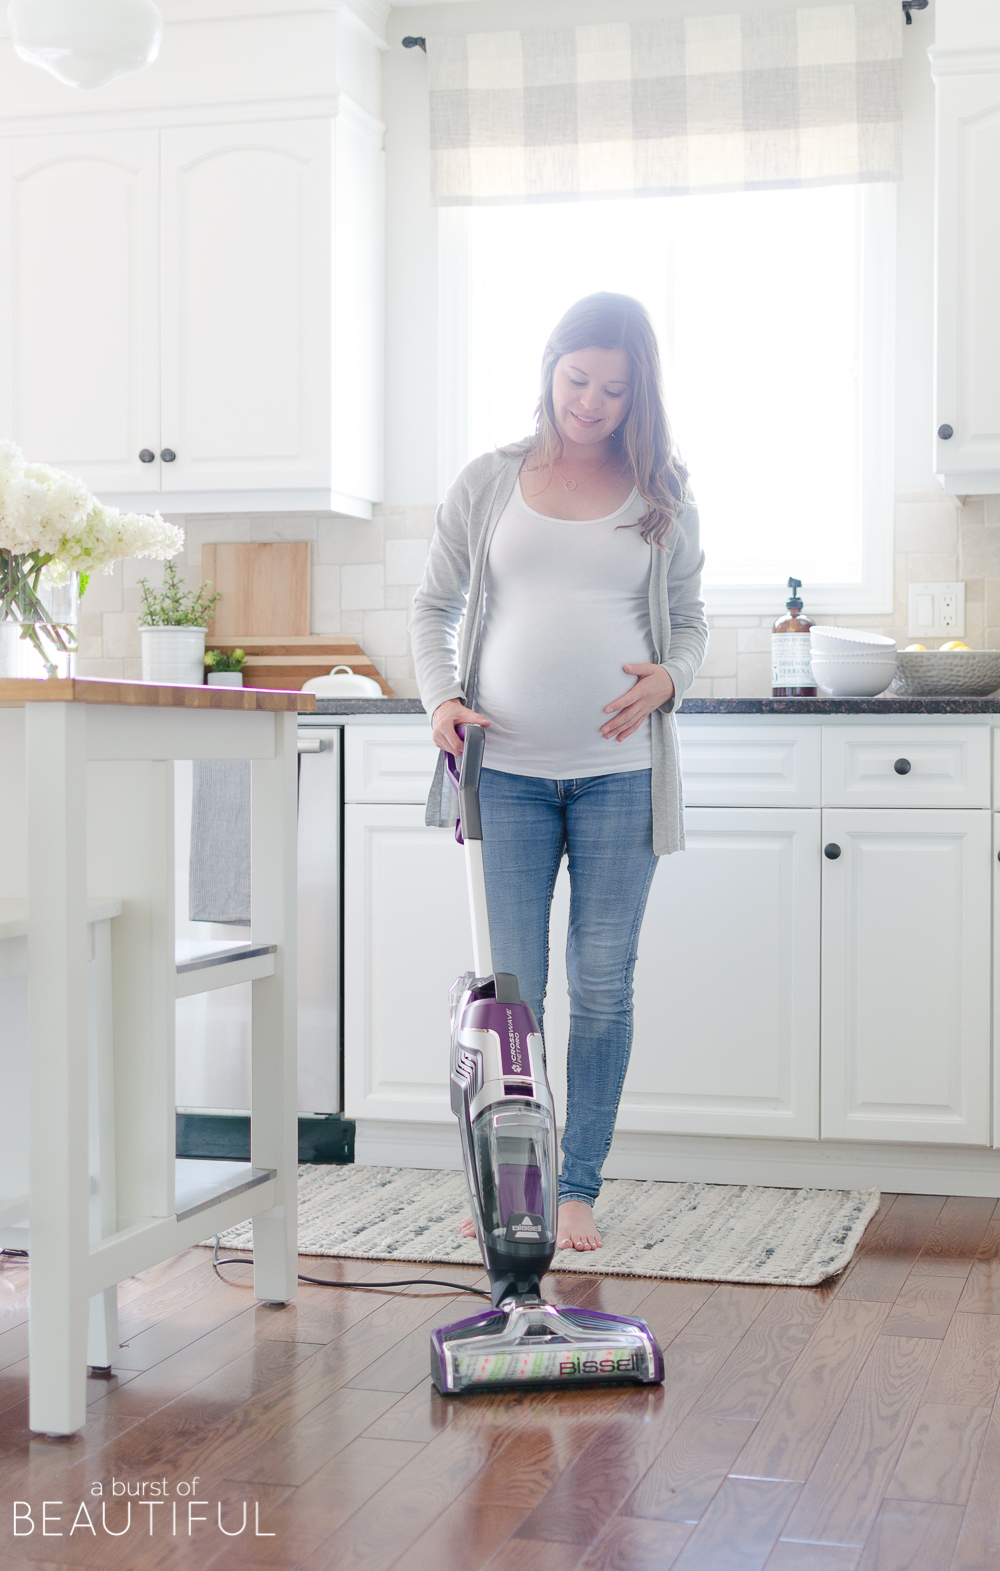 Simple and easy cleaning tips to save you time while keeping your home clean and organized